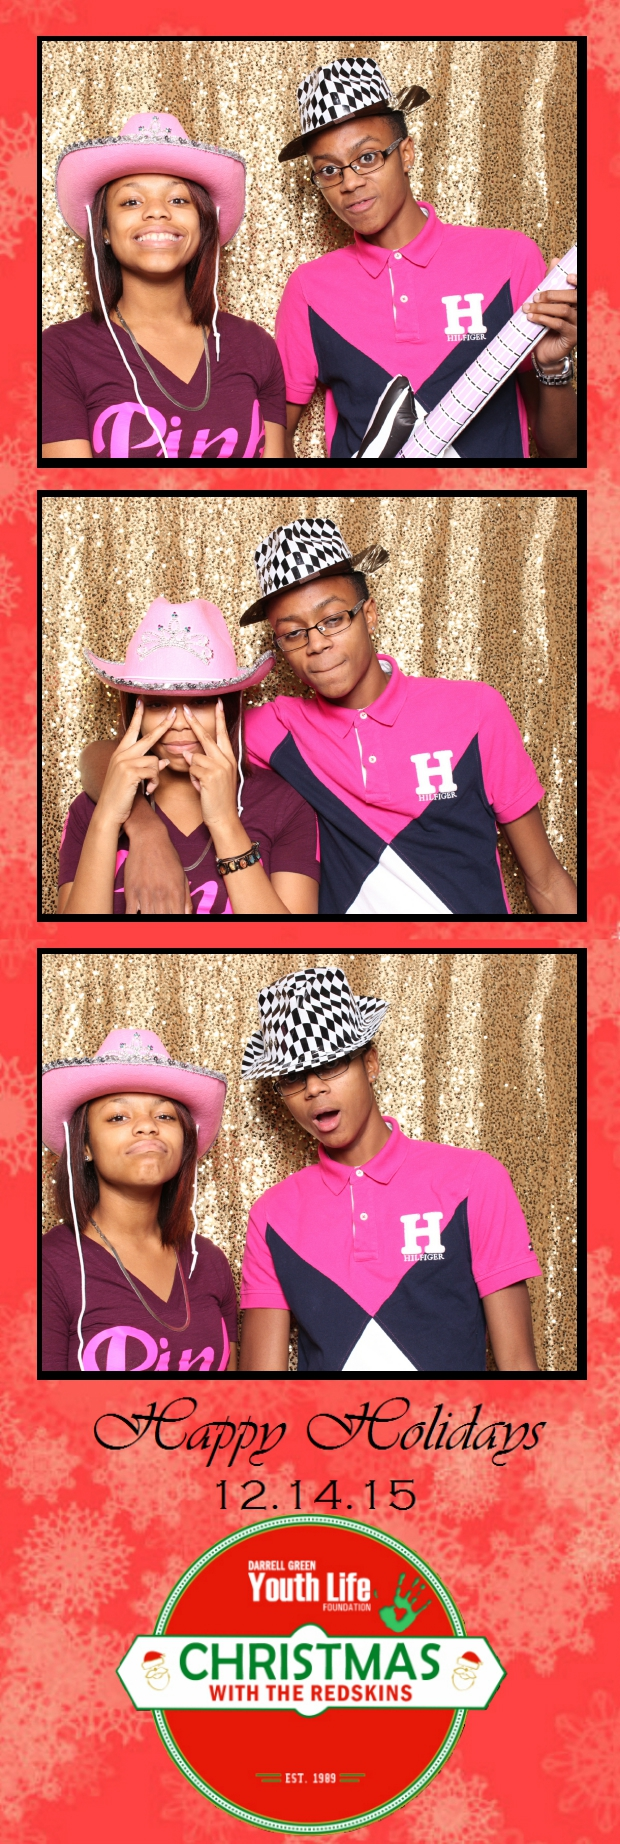 Guest House Events Photo Booth DGYLF Strips (64).jpg